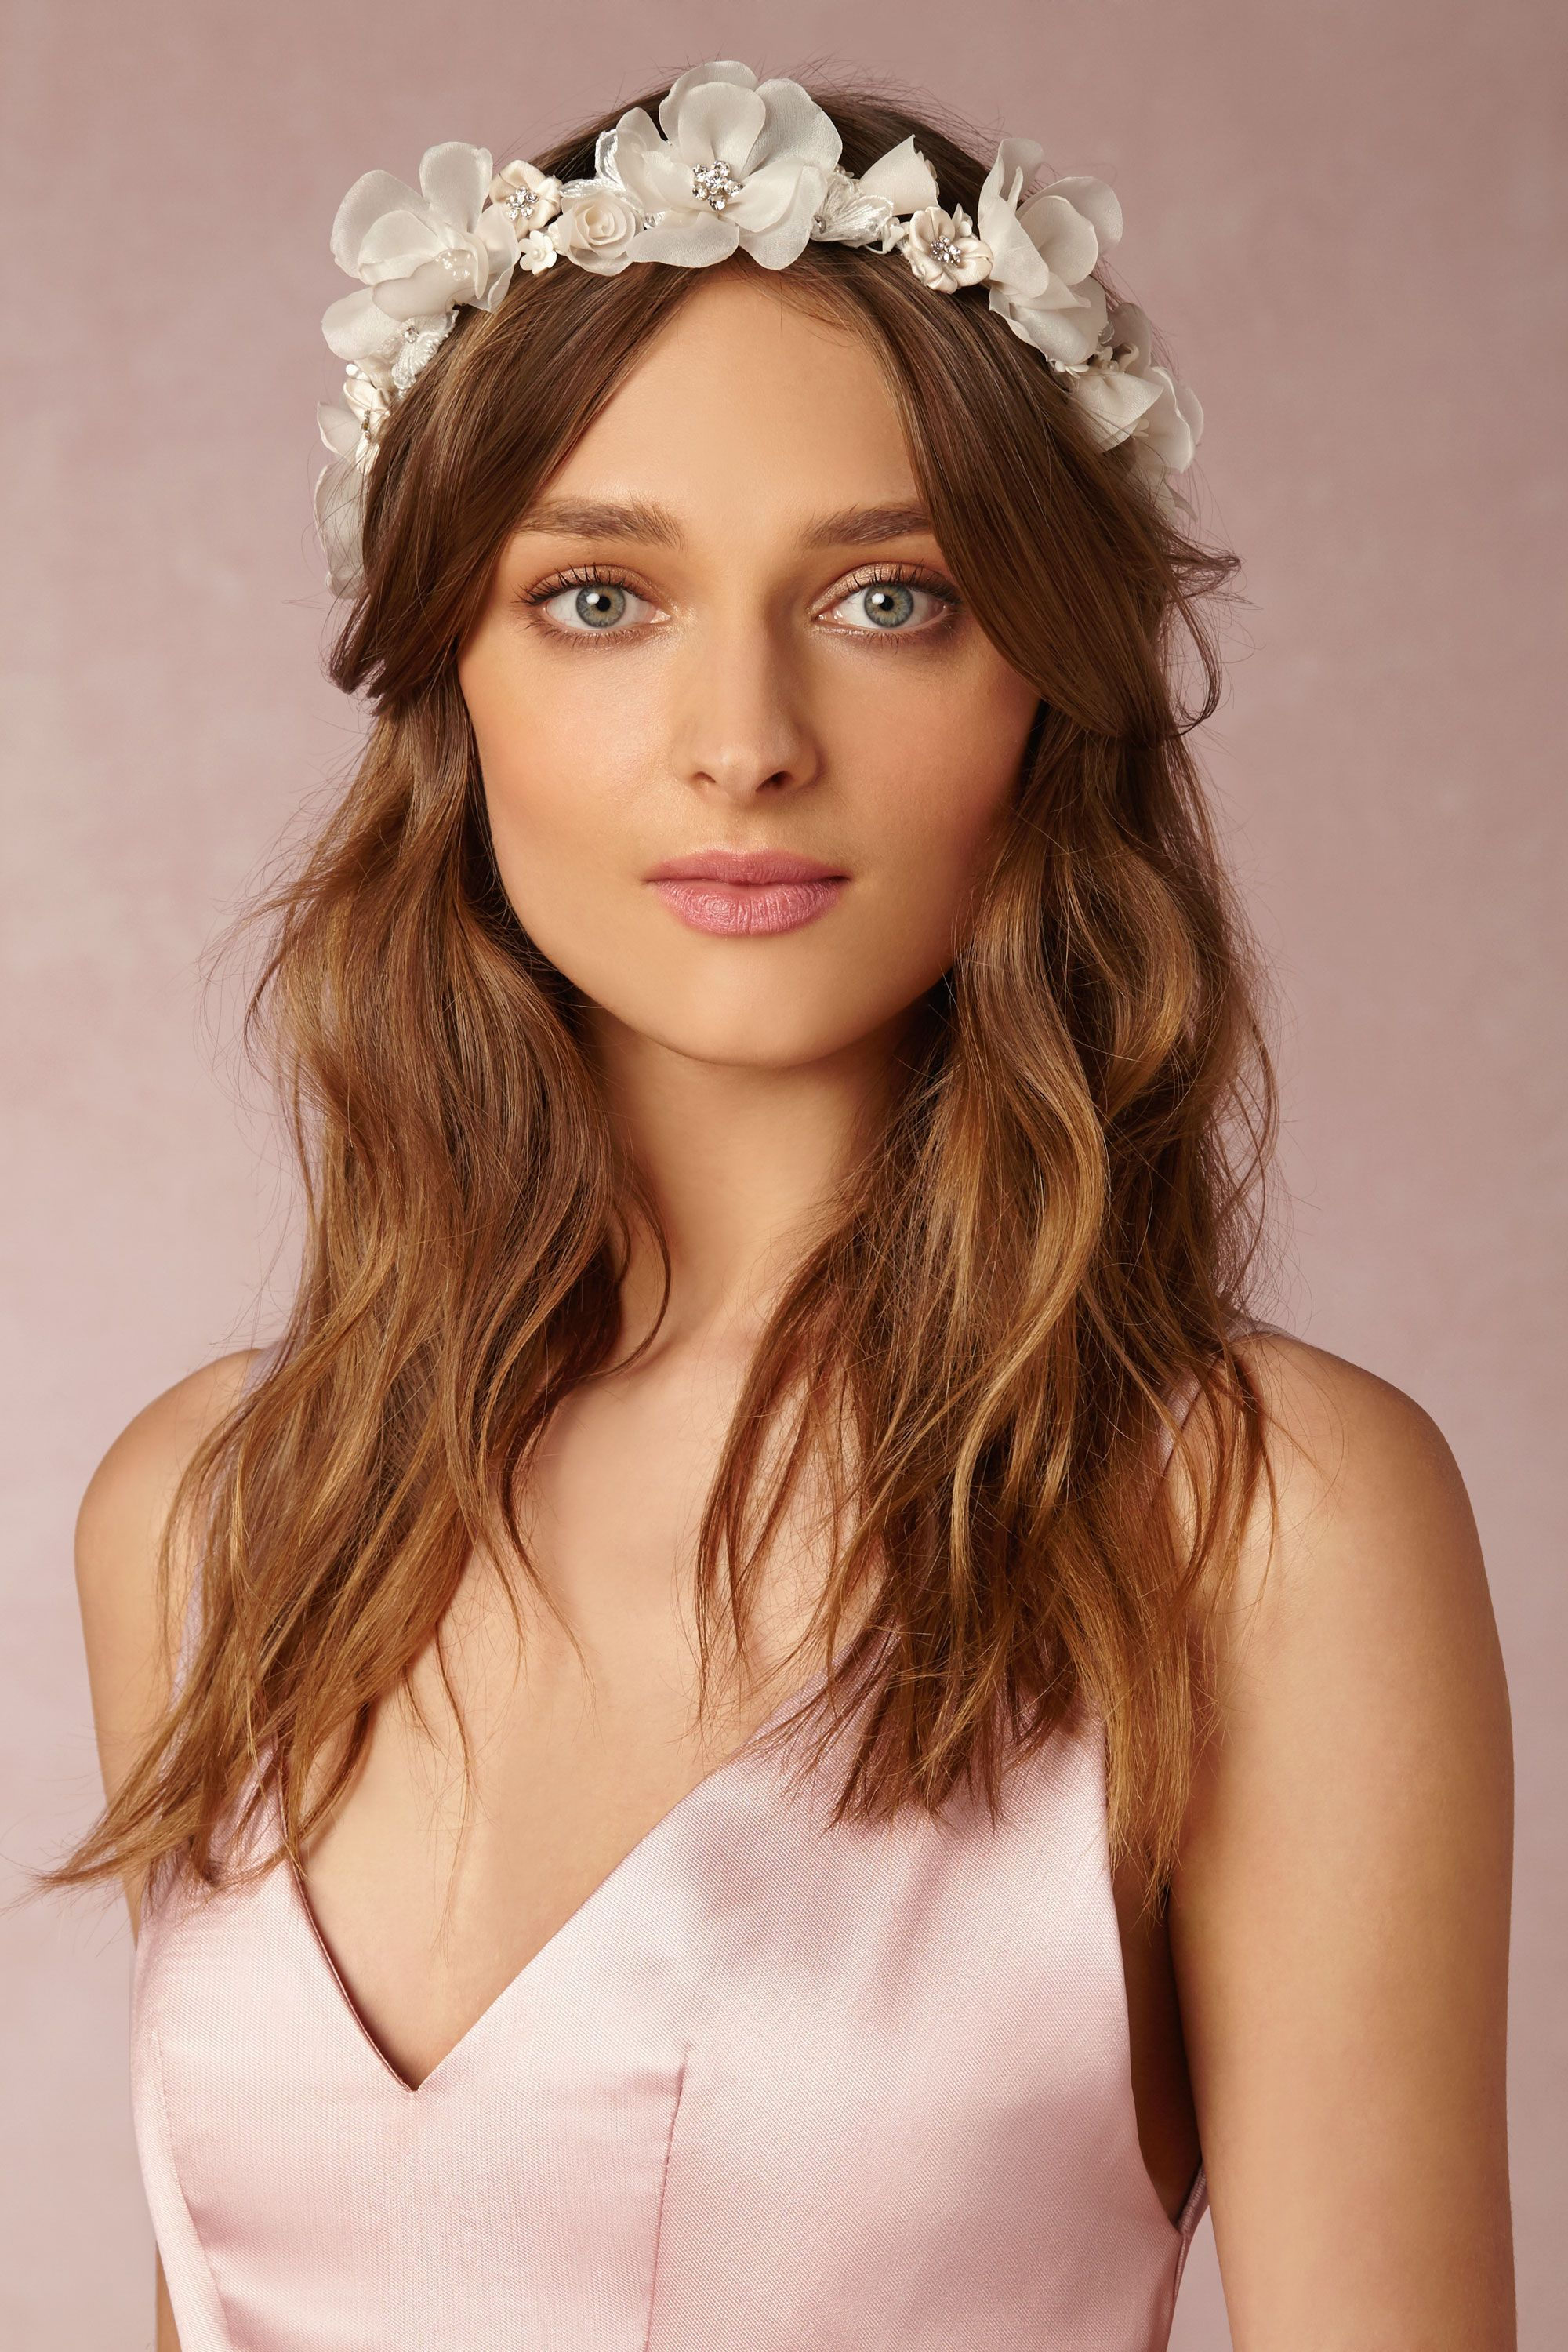 Iceberg rose crown from bhldn garden weddings pinterest rose